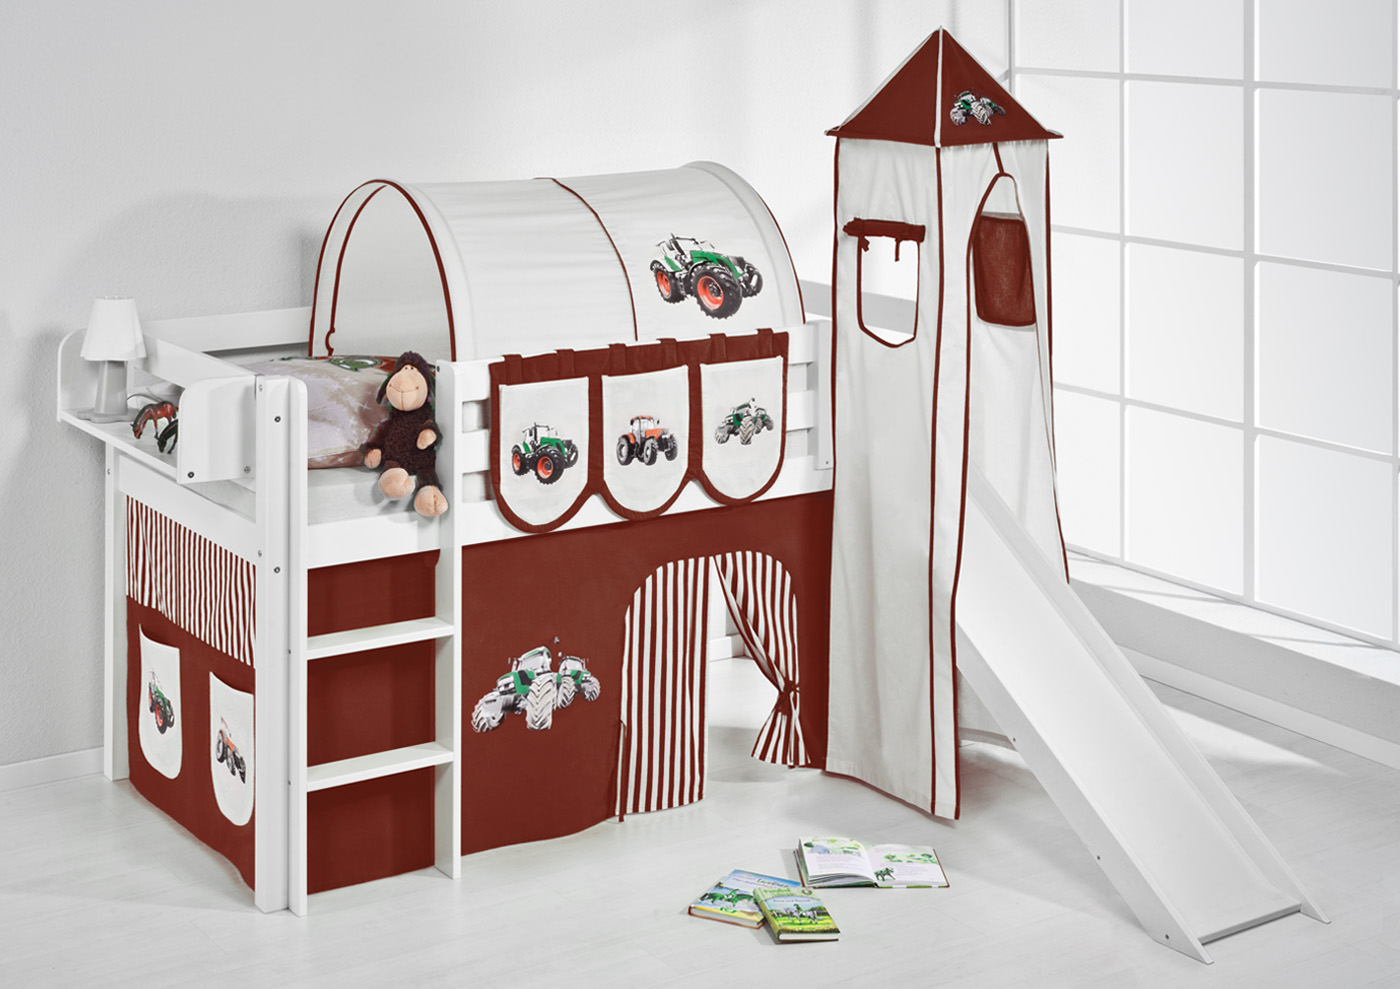 lit mezzanine avec echelle toboggan et tour by lilokids ebay. Black Bedroom Furniture Sets. Home Design Ideas